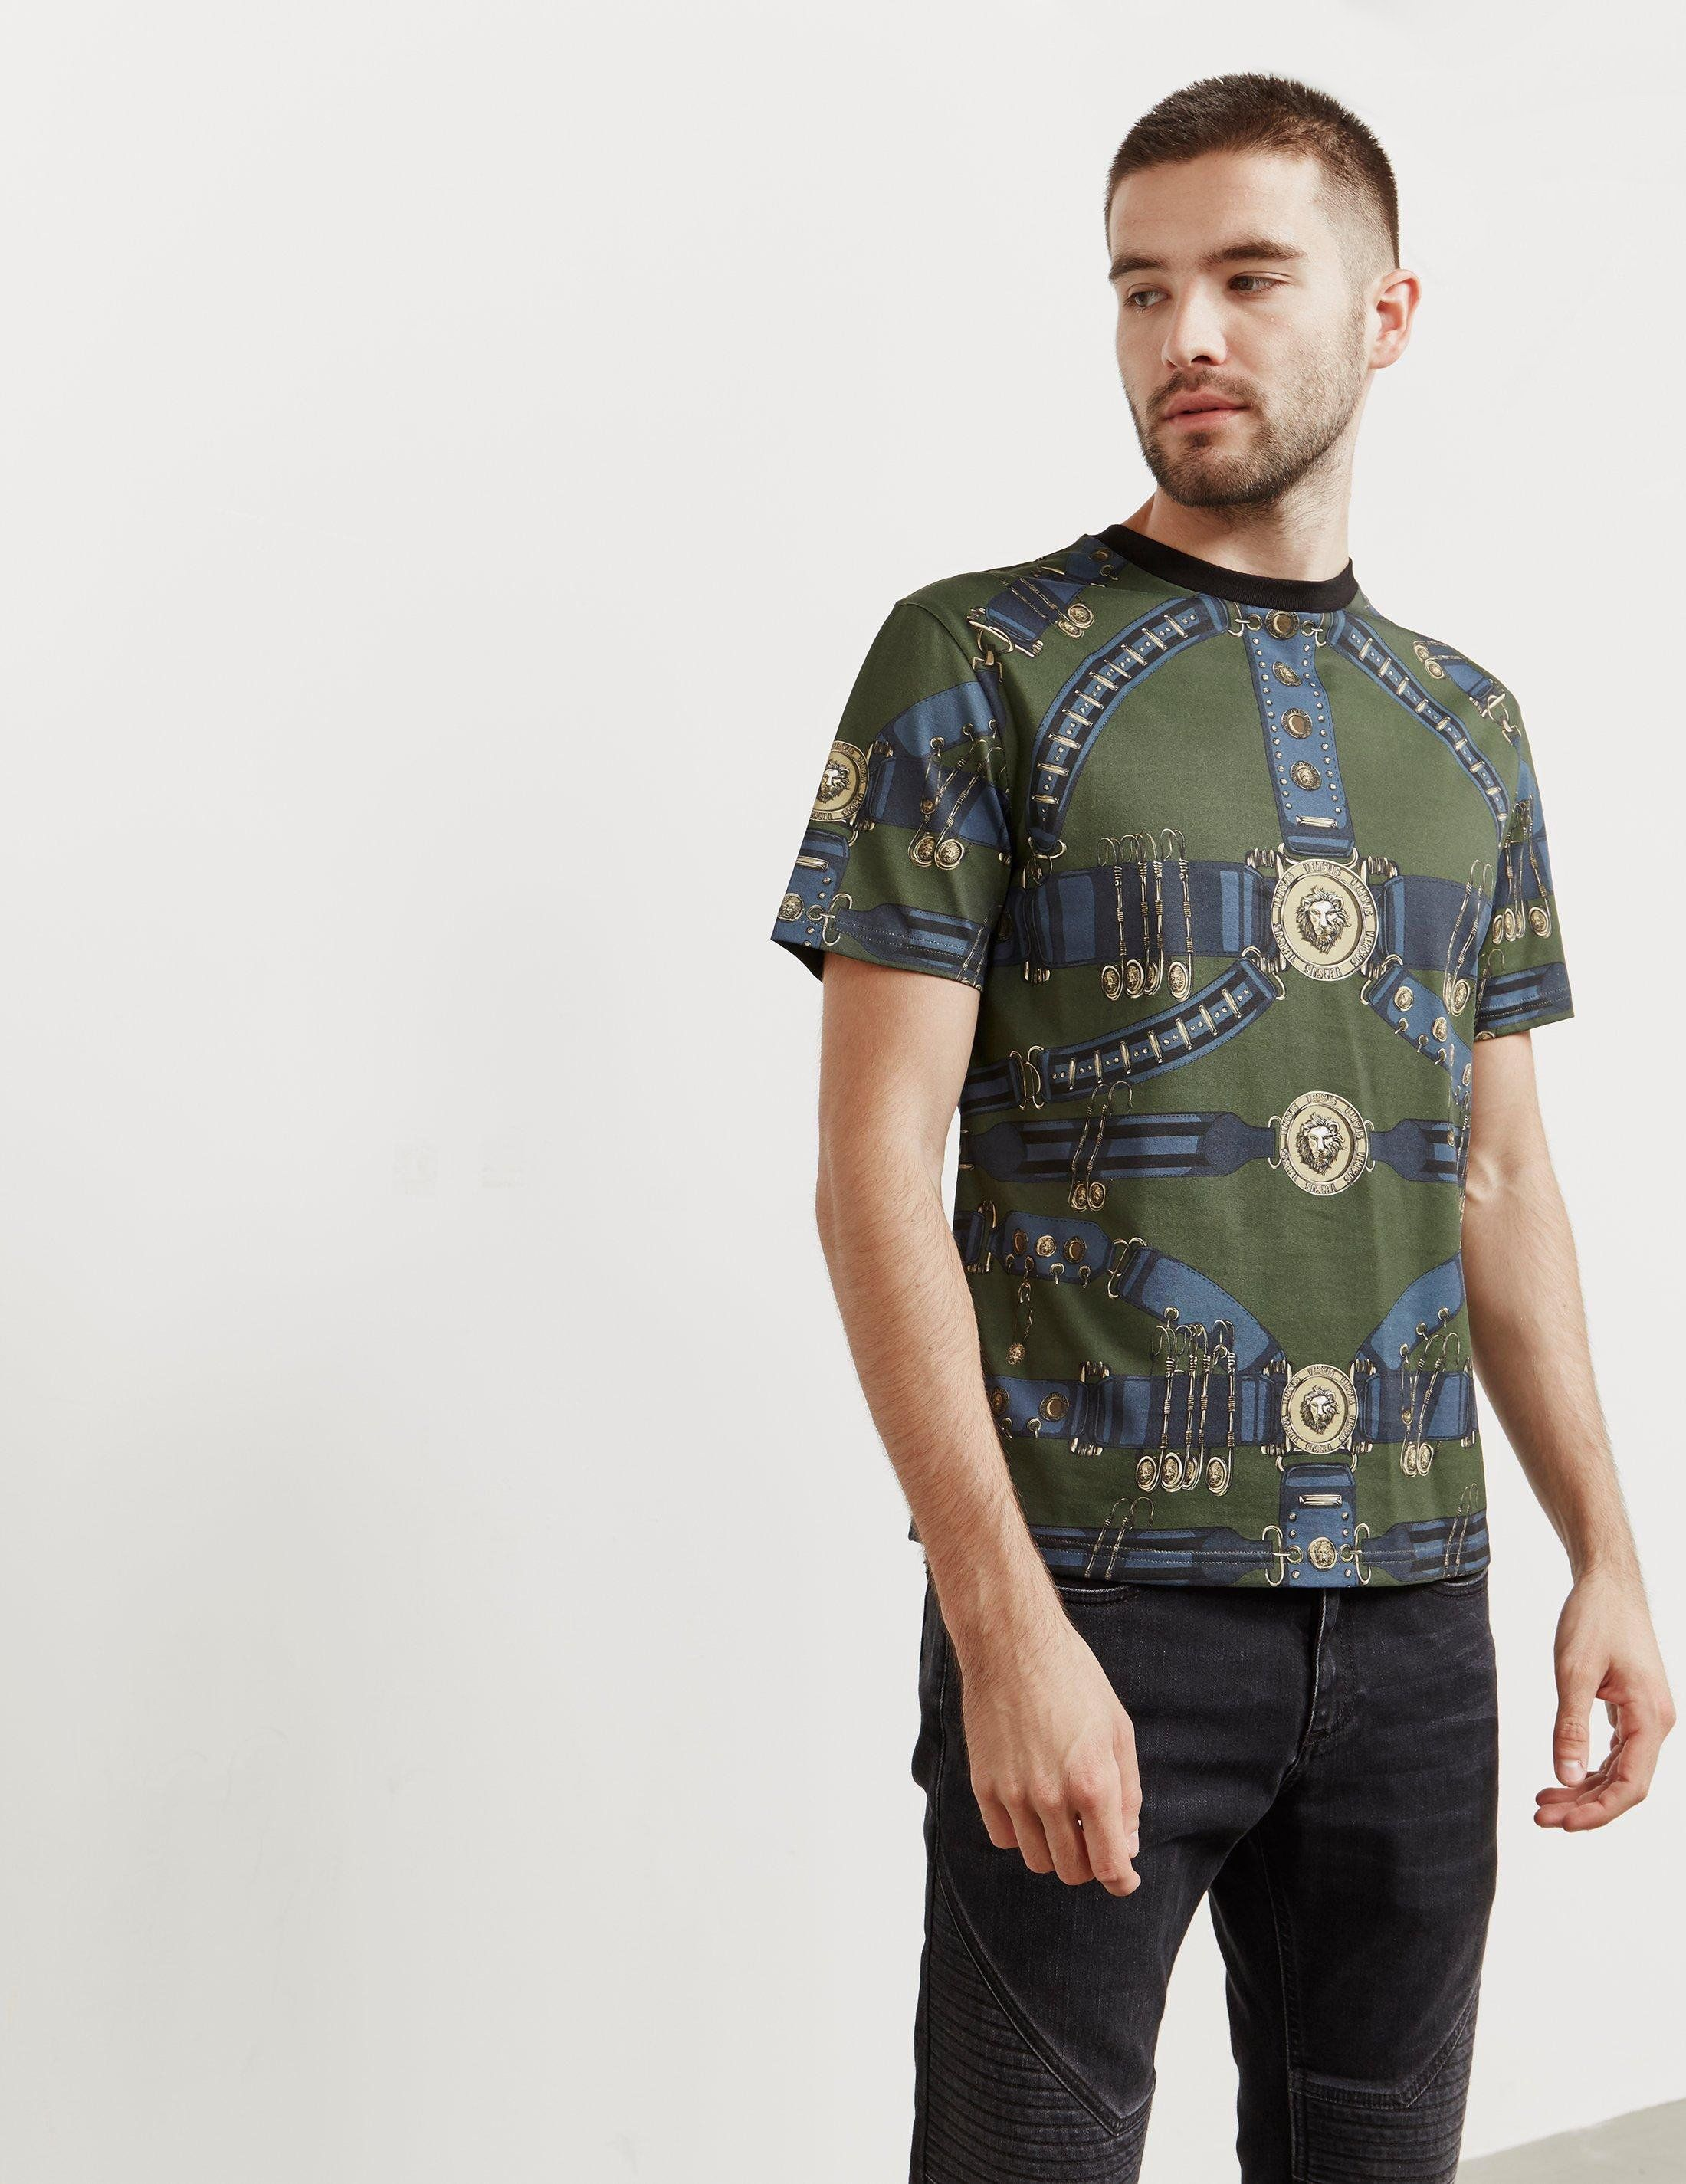 Versus Versace Printed Short Sleeve T-Shirt - Online Exclusive